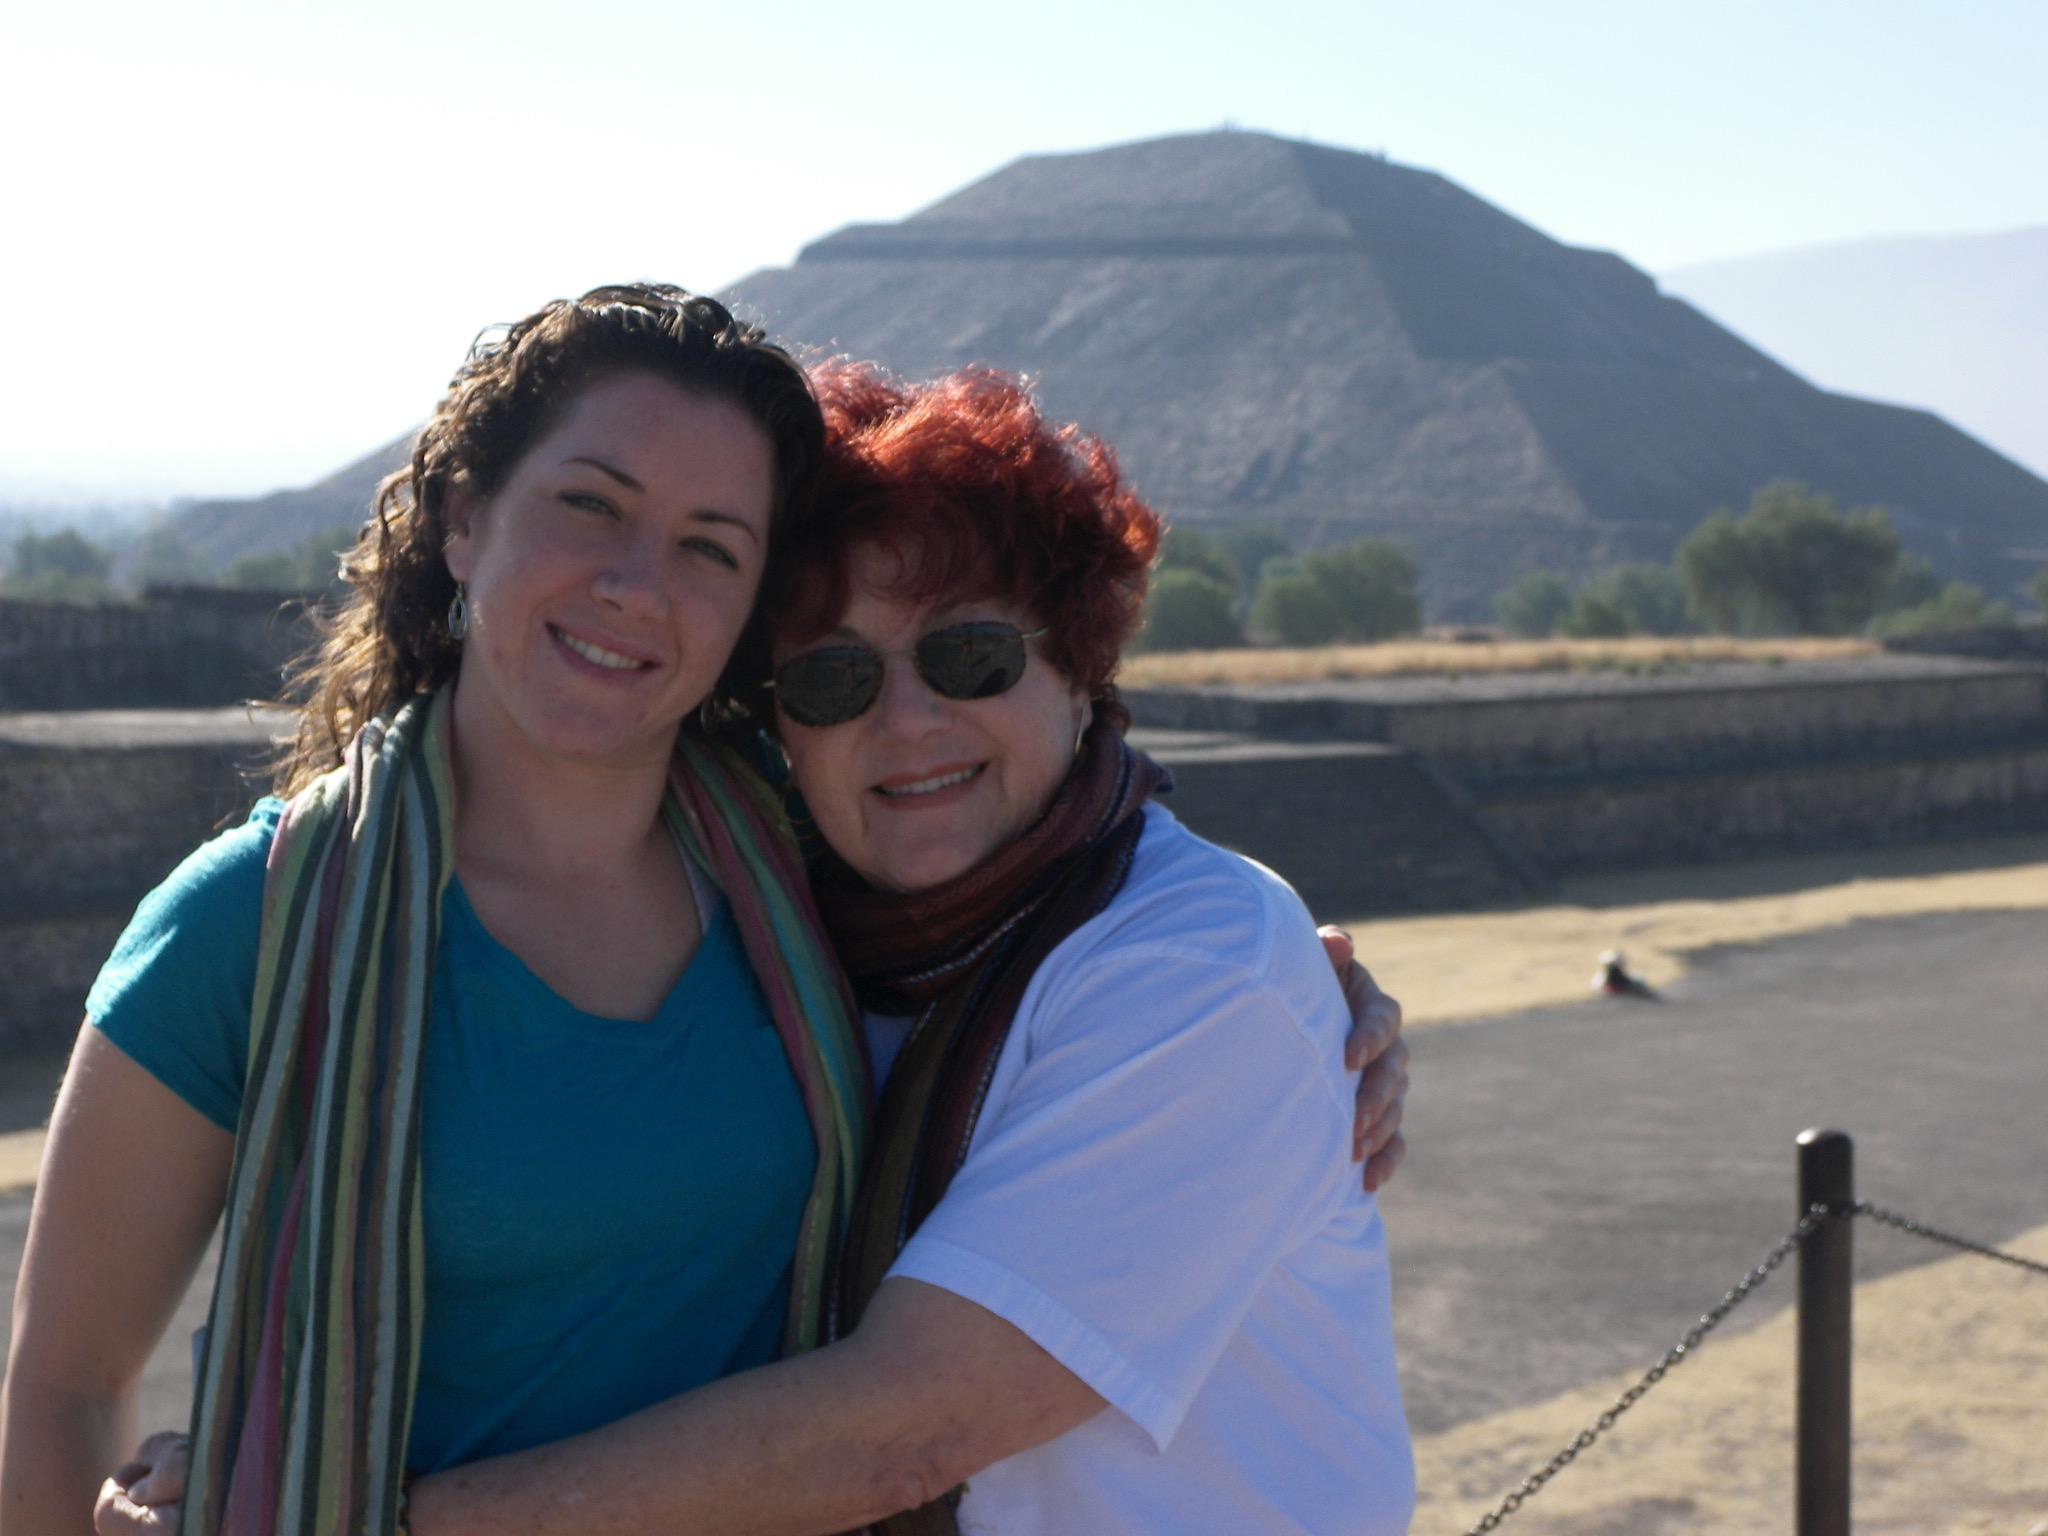 Katie & Kathleen in Mexico, joining Traverse next at Machu Picchu!